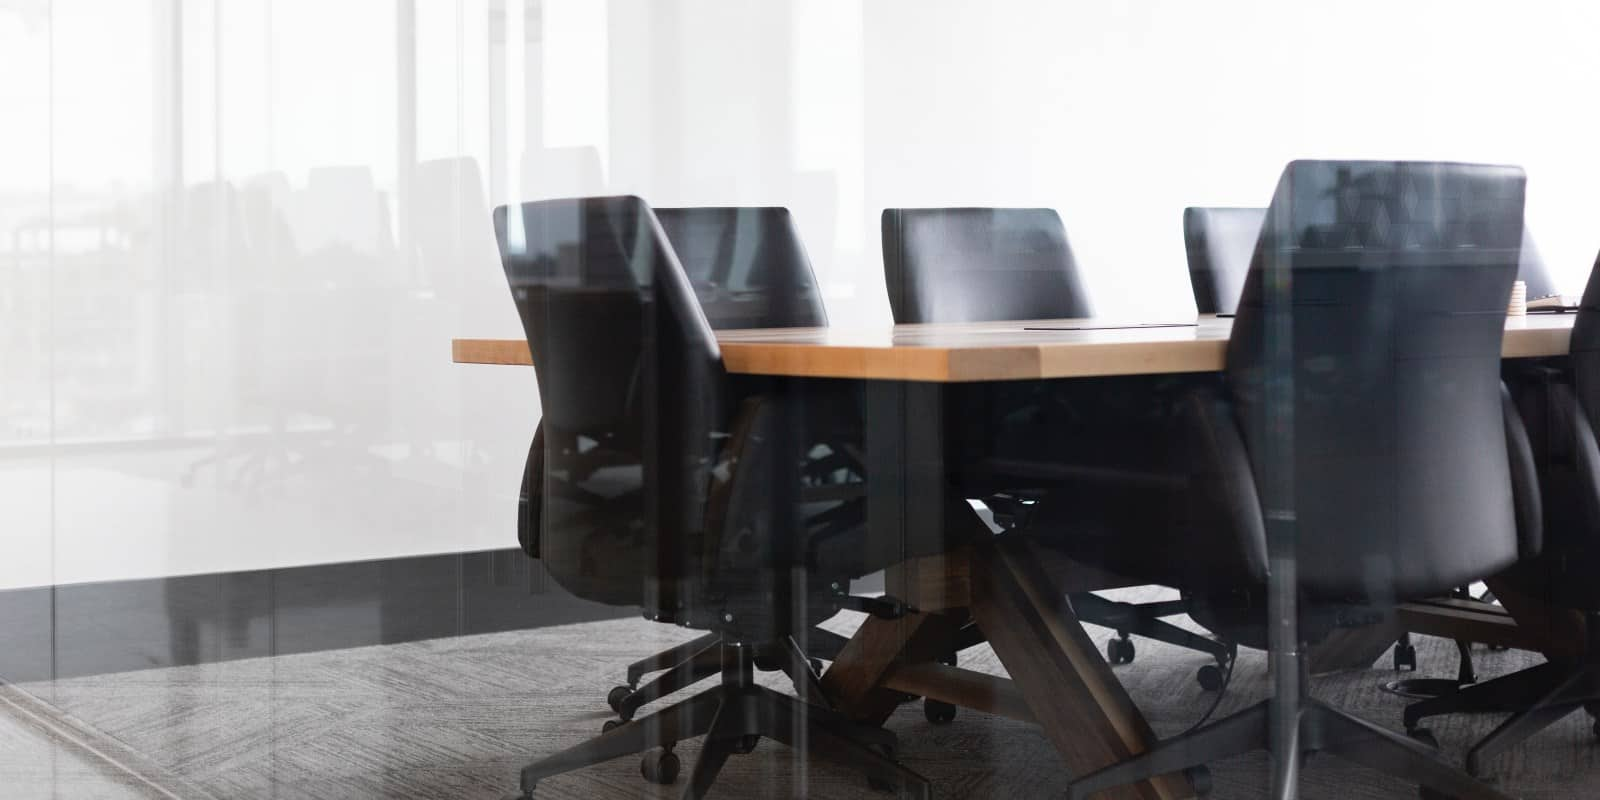 Black leather directors chairs around a boardroom table